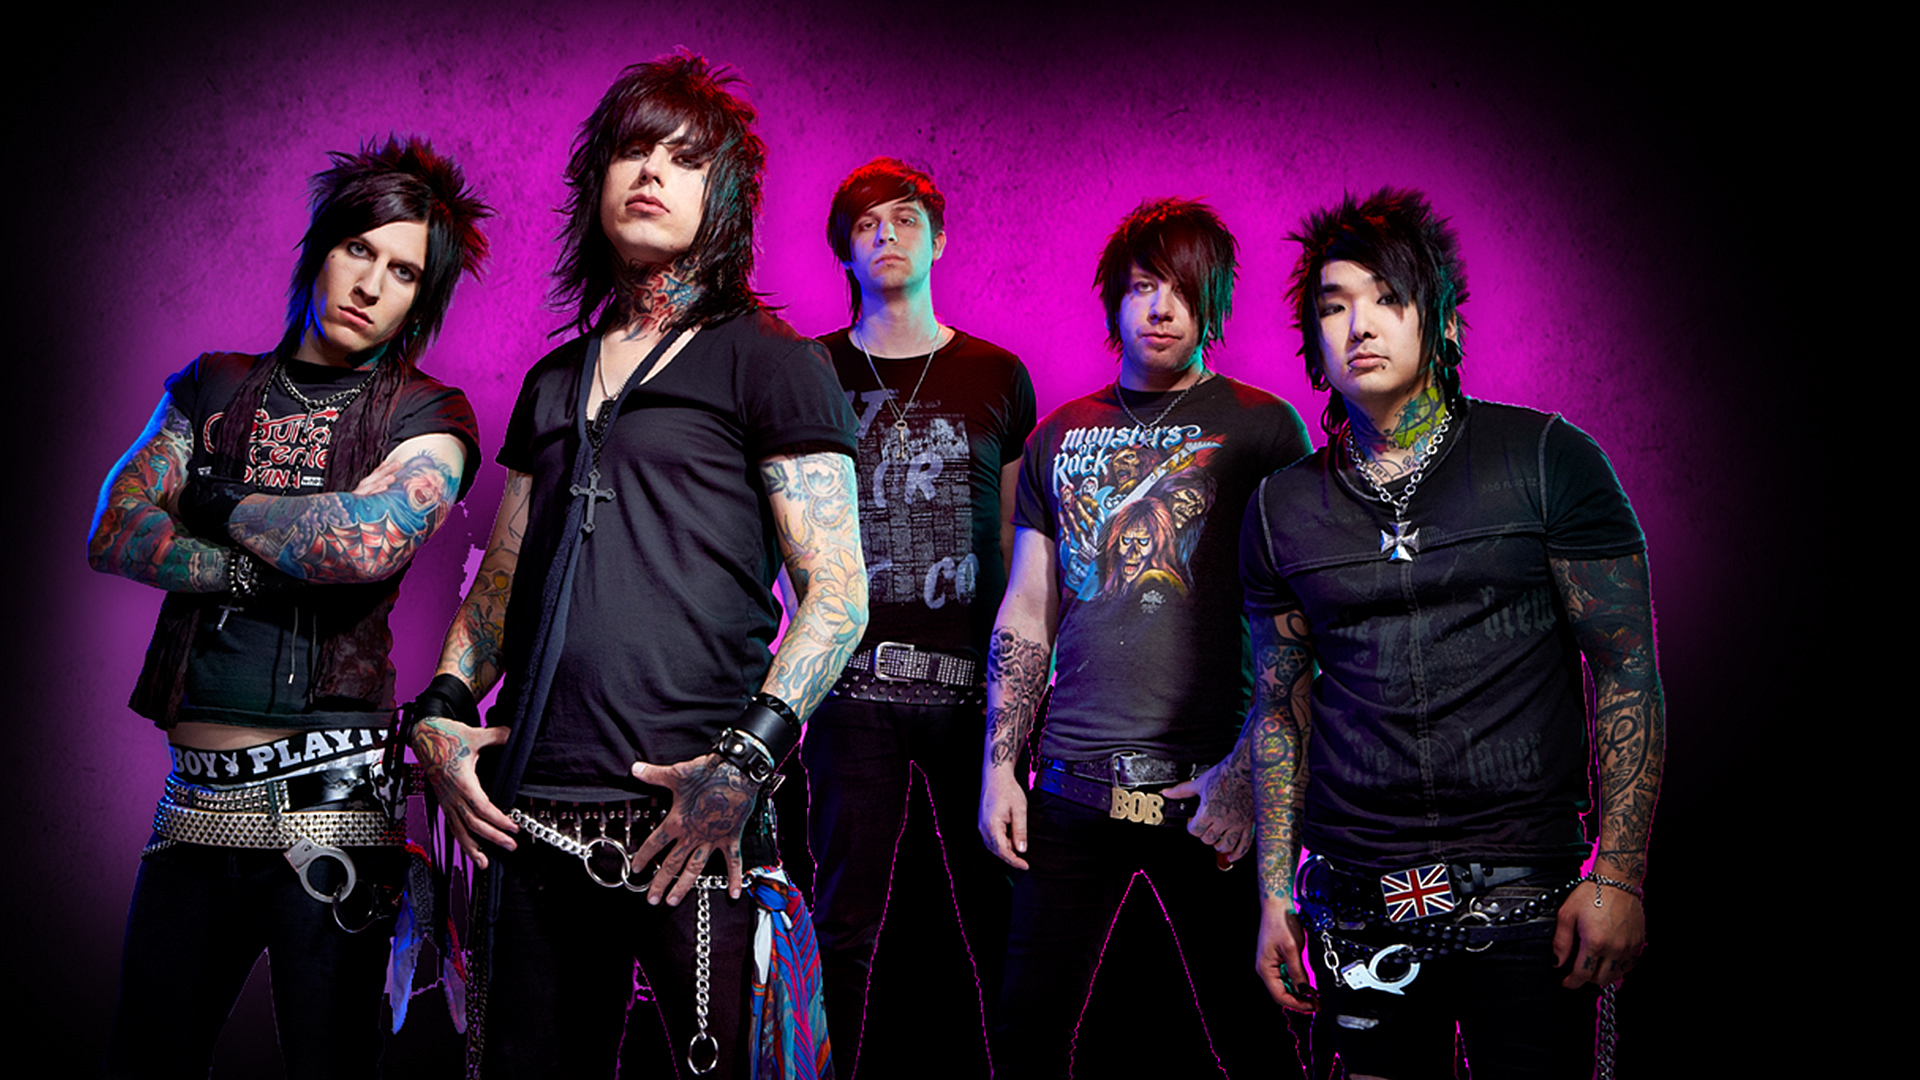 Falling In Reverse Lips Wallpaper Falling In Reverse Hd Wallpaper Background Image